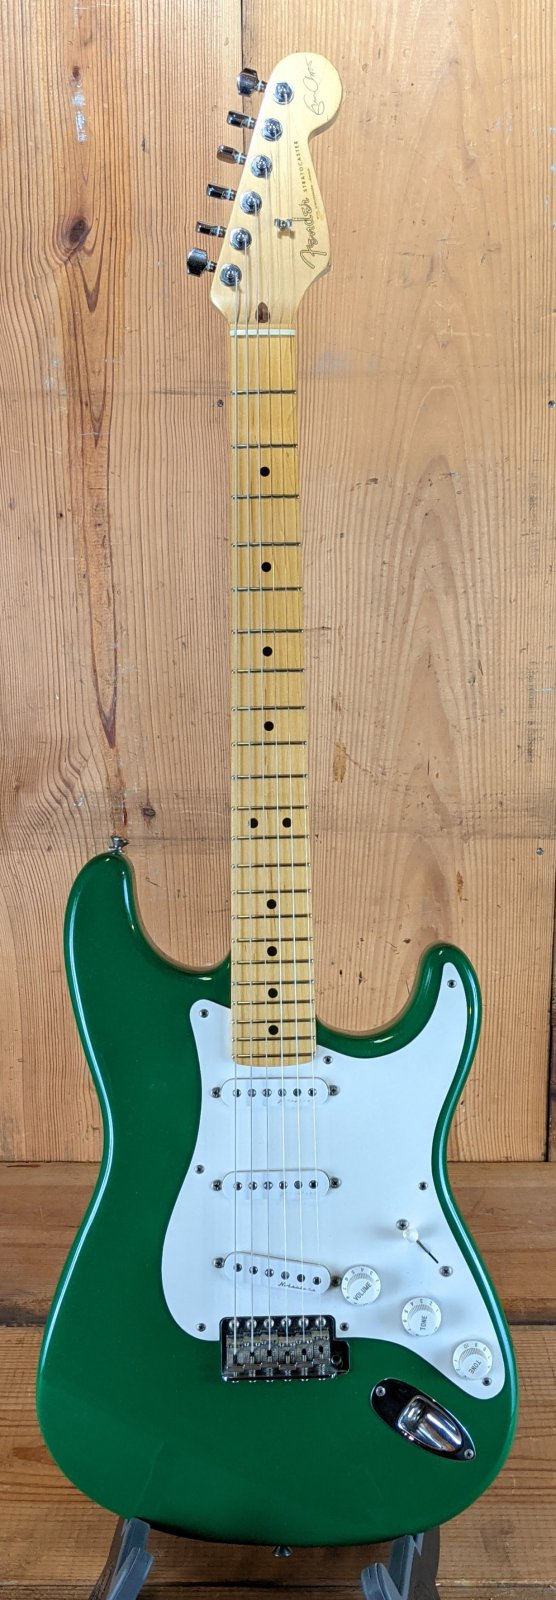 1989 Fender Eric Clapton Signature Stratocaster - 7-UP Green!